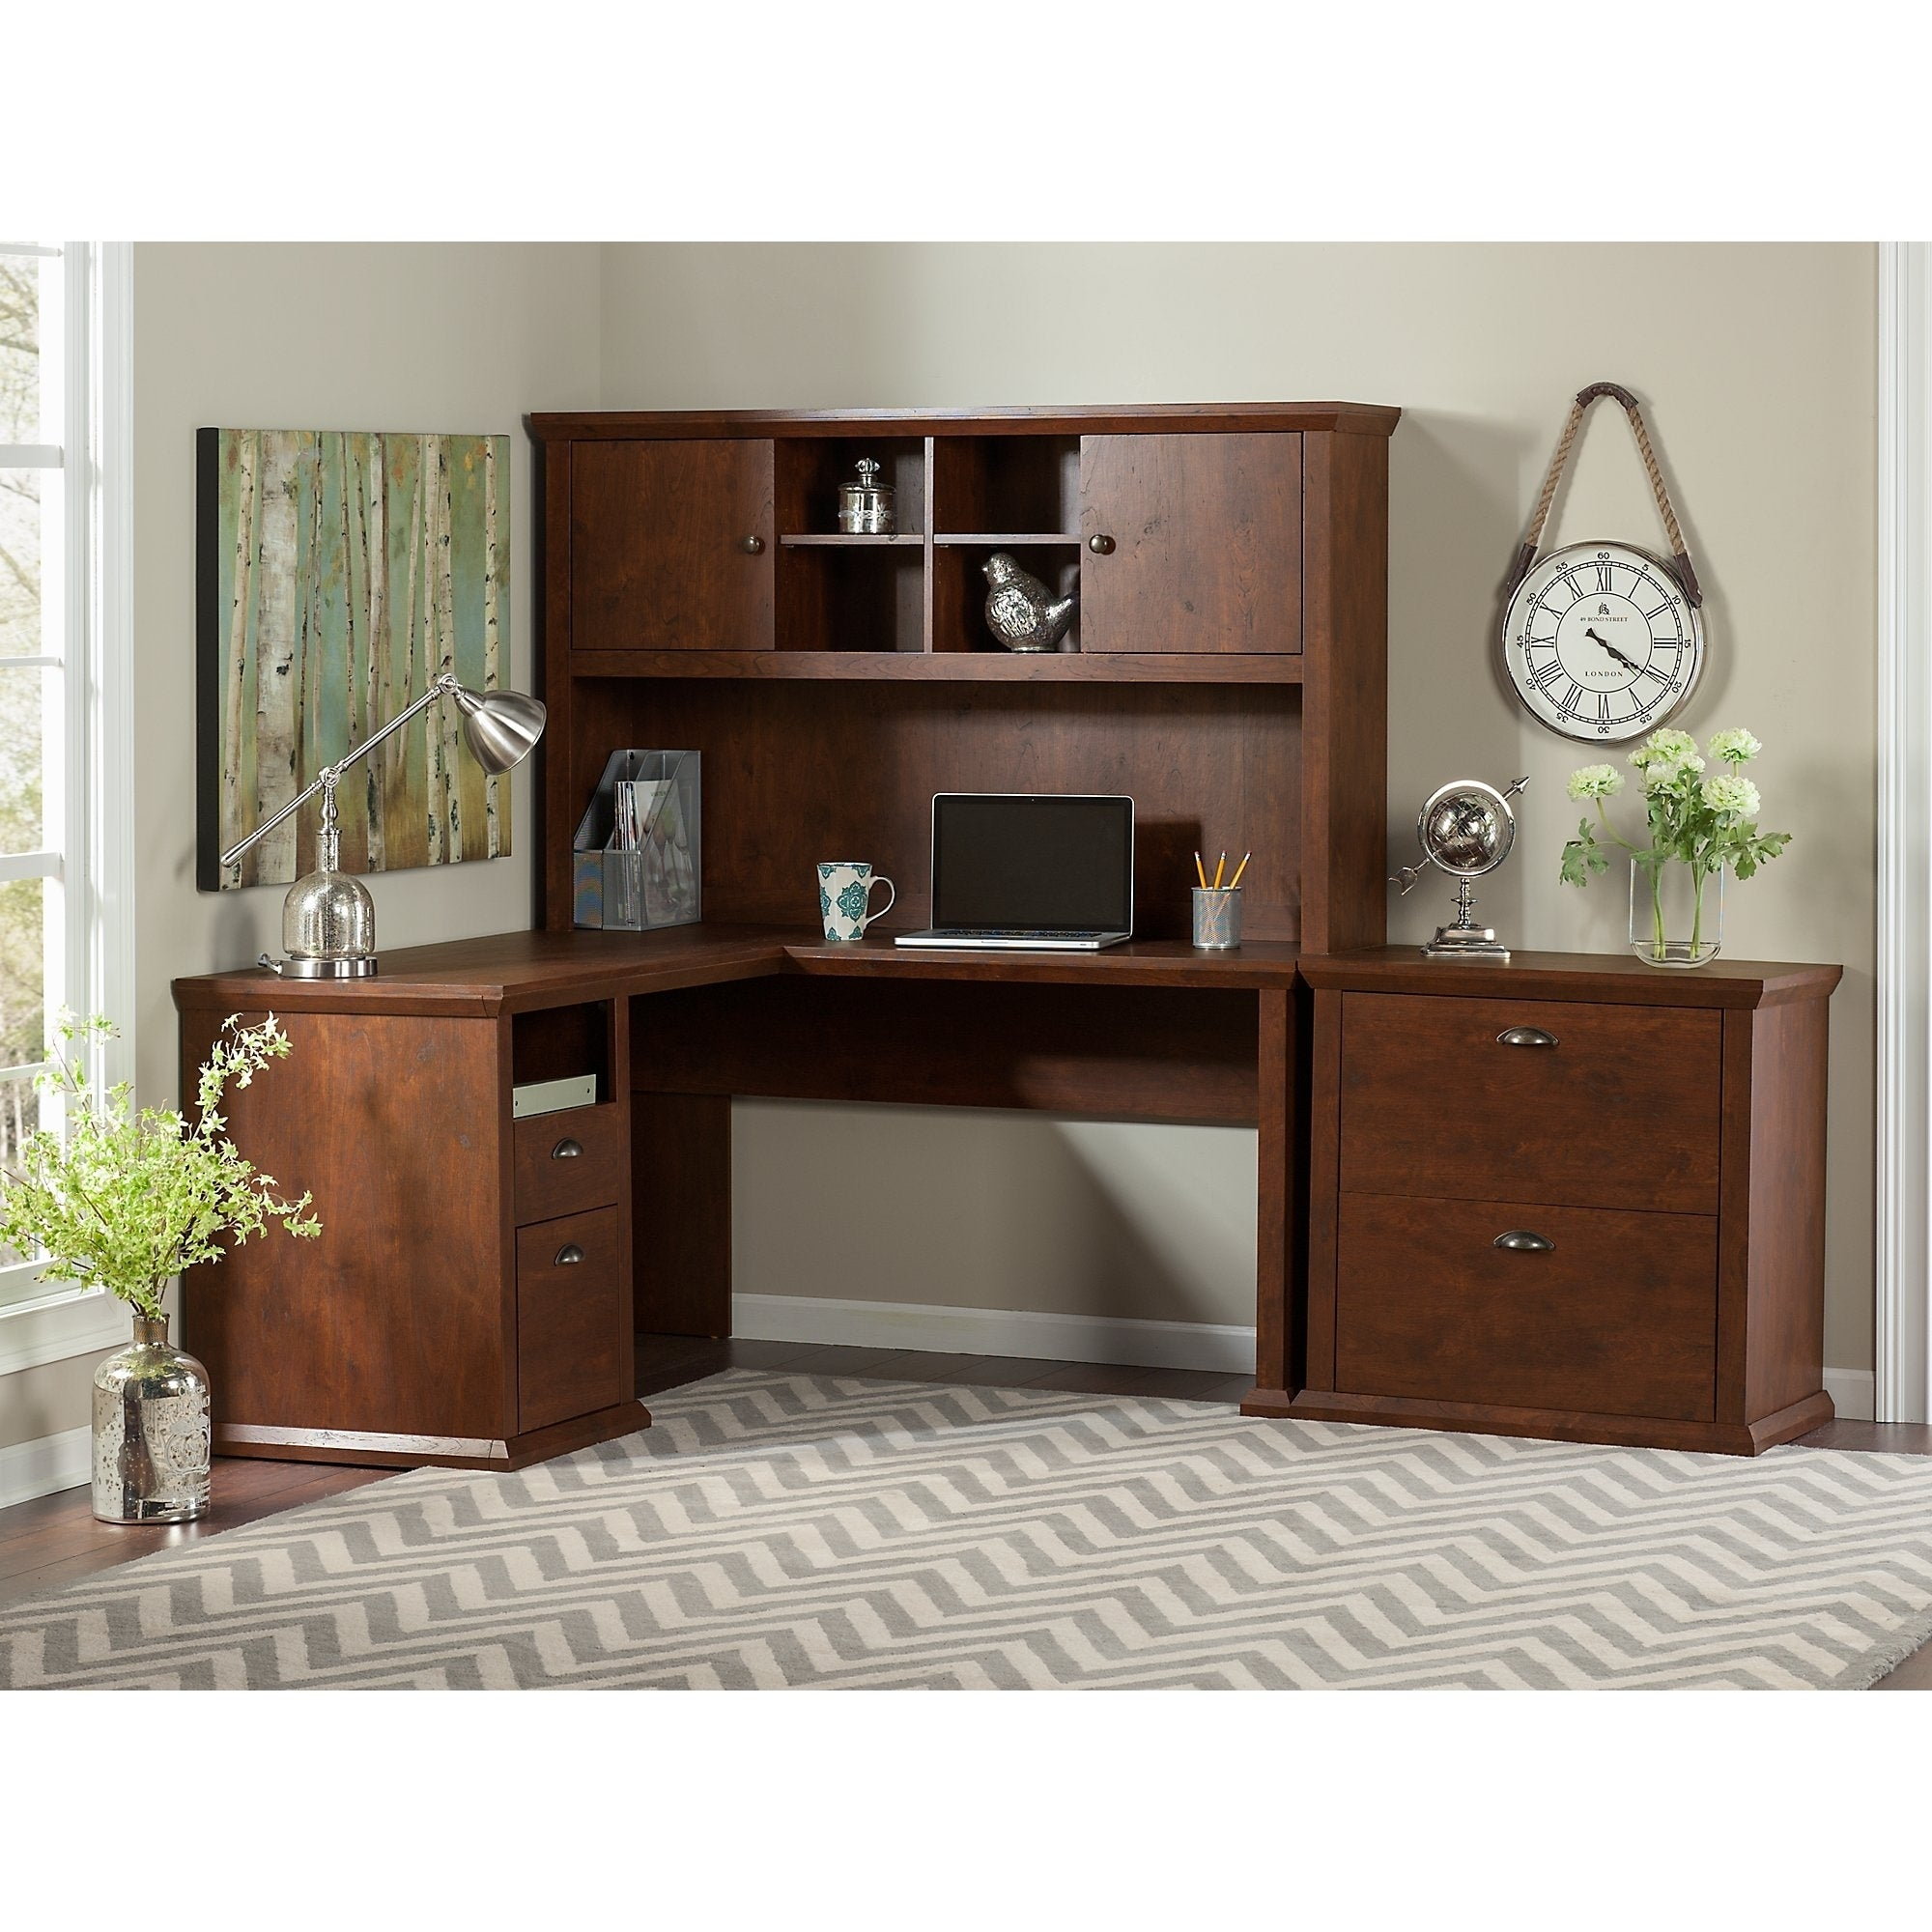 with cabinet office file organizing modern decoration desks filing your height works cabinets using signin desk